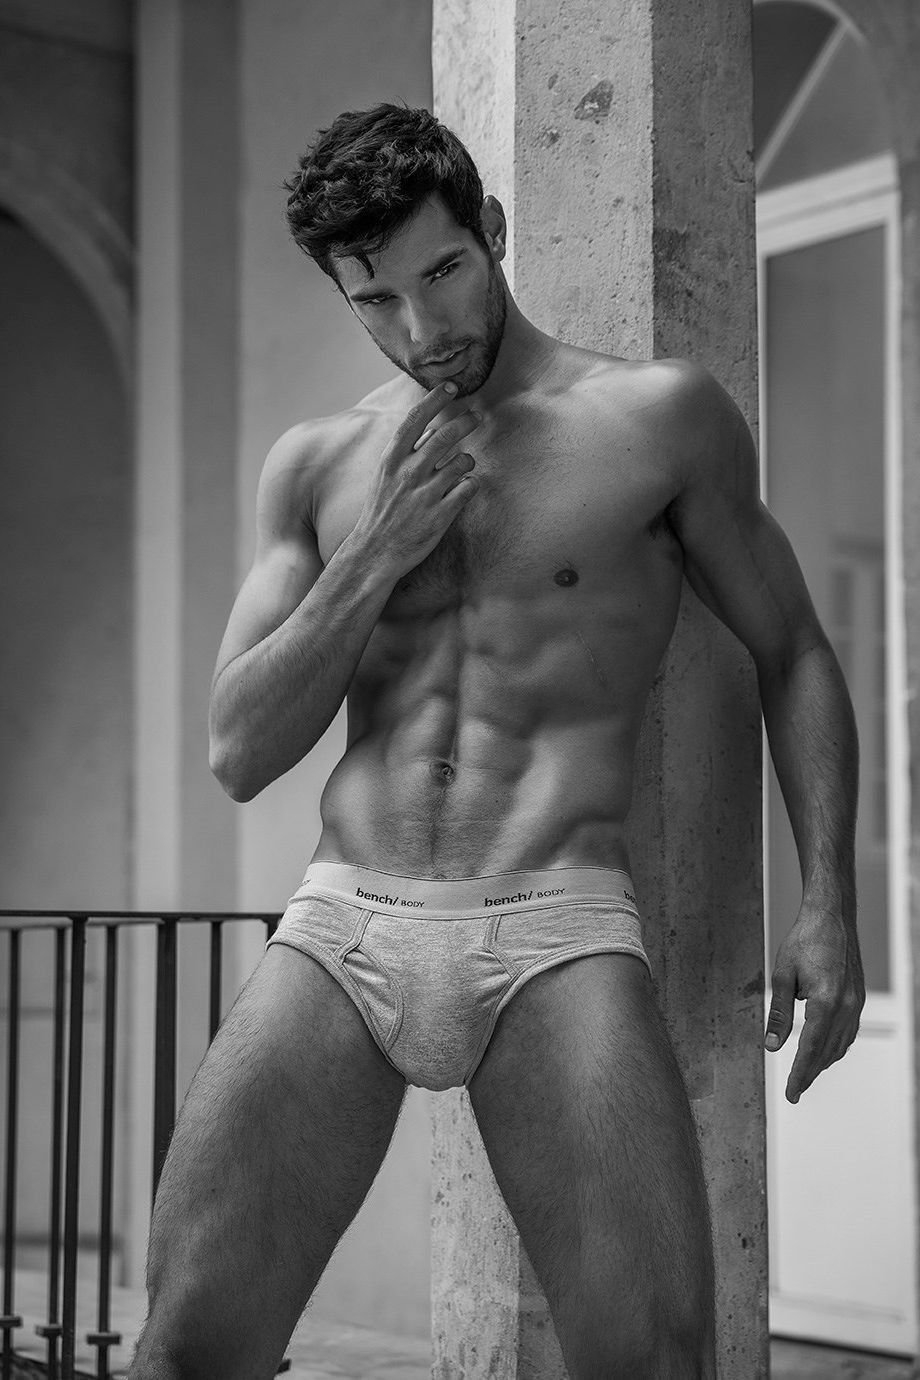 18+ hot pics of dudes with great bulges and vpl (visible penis line